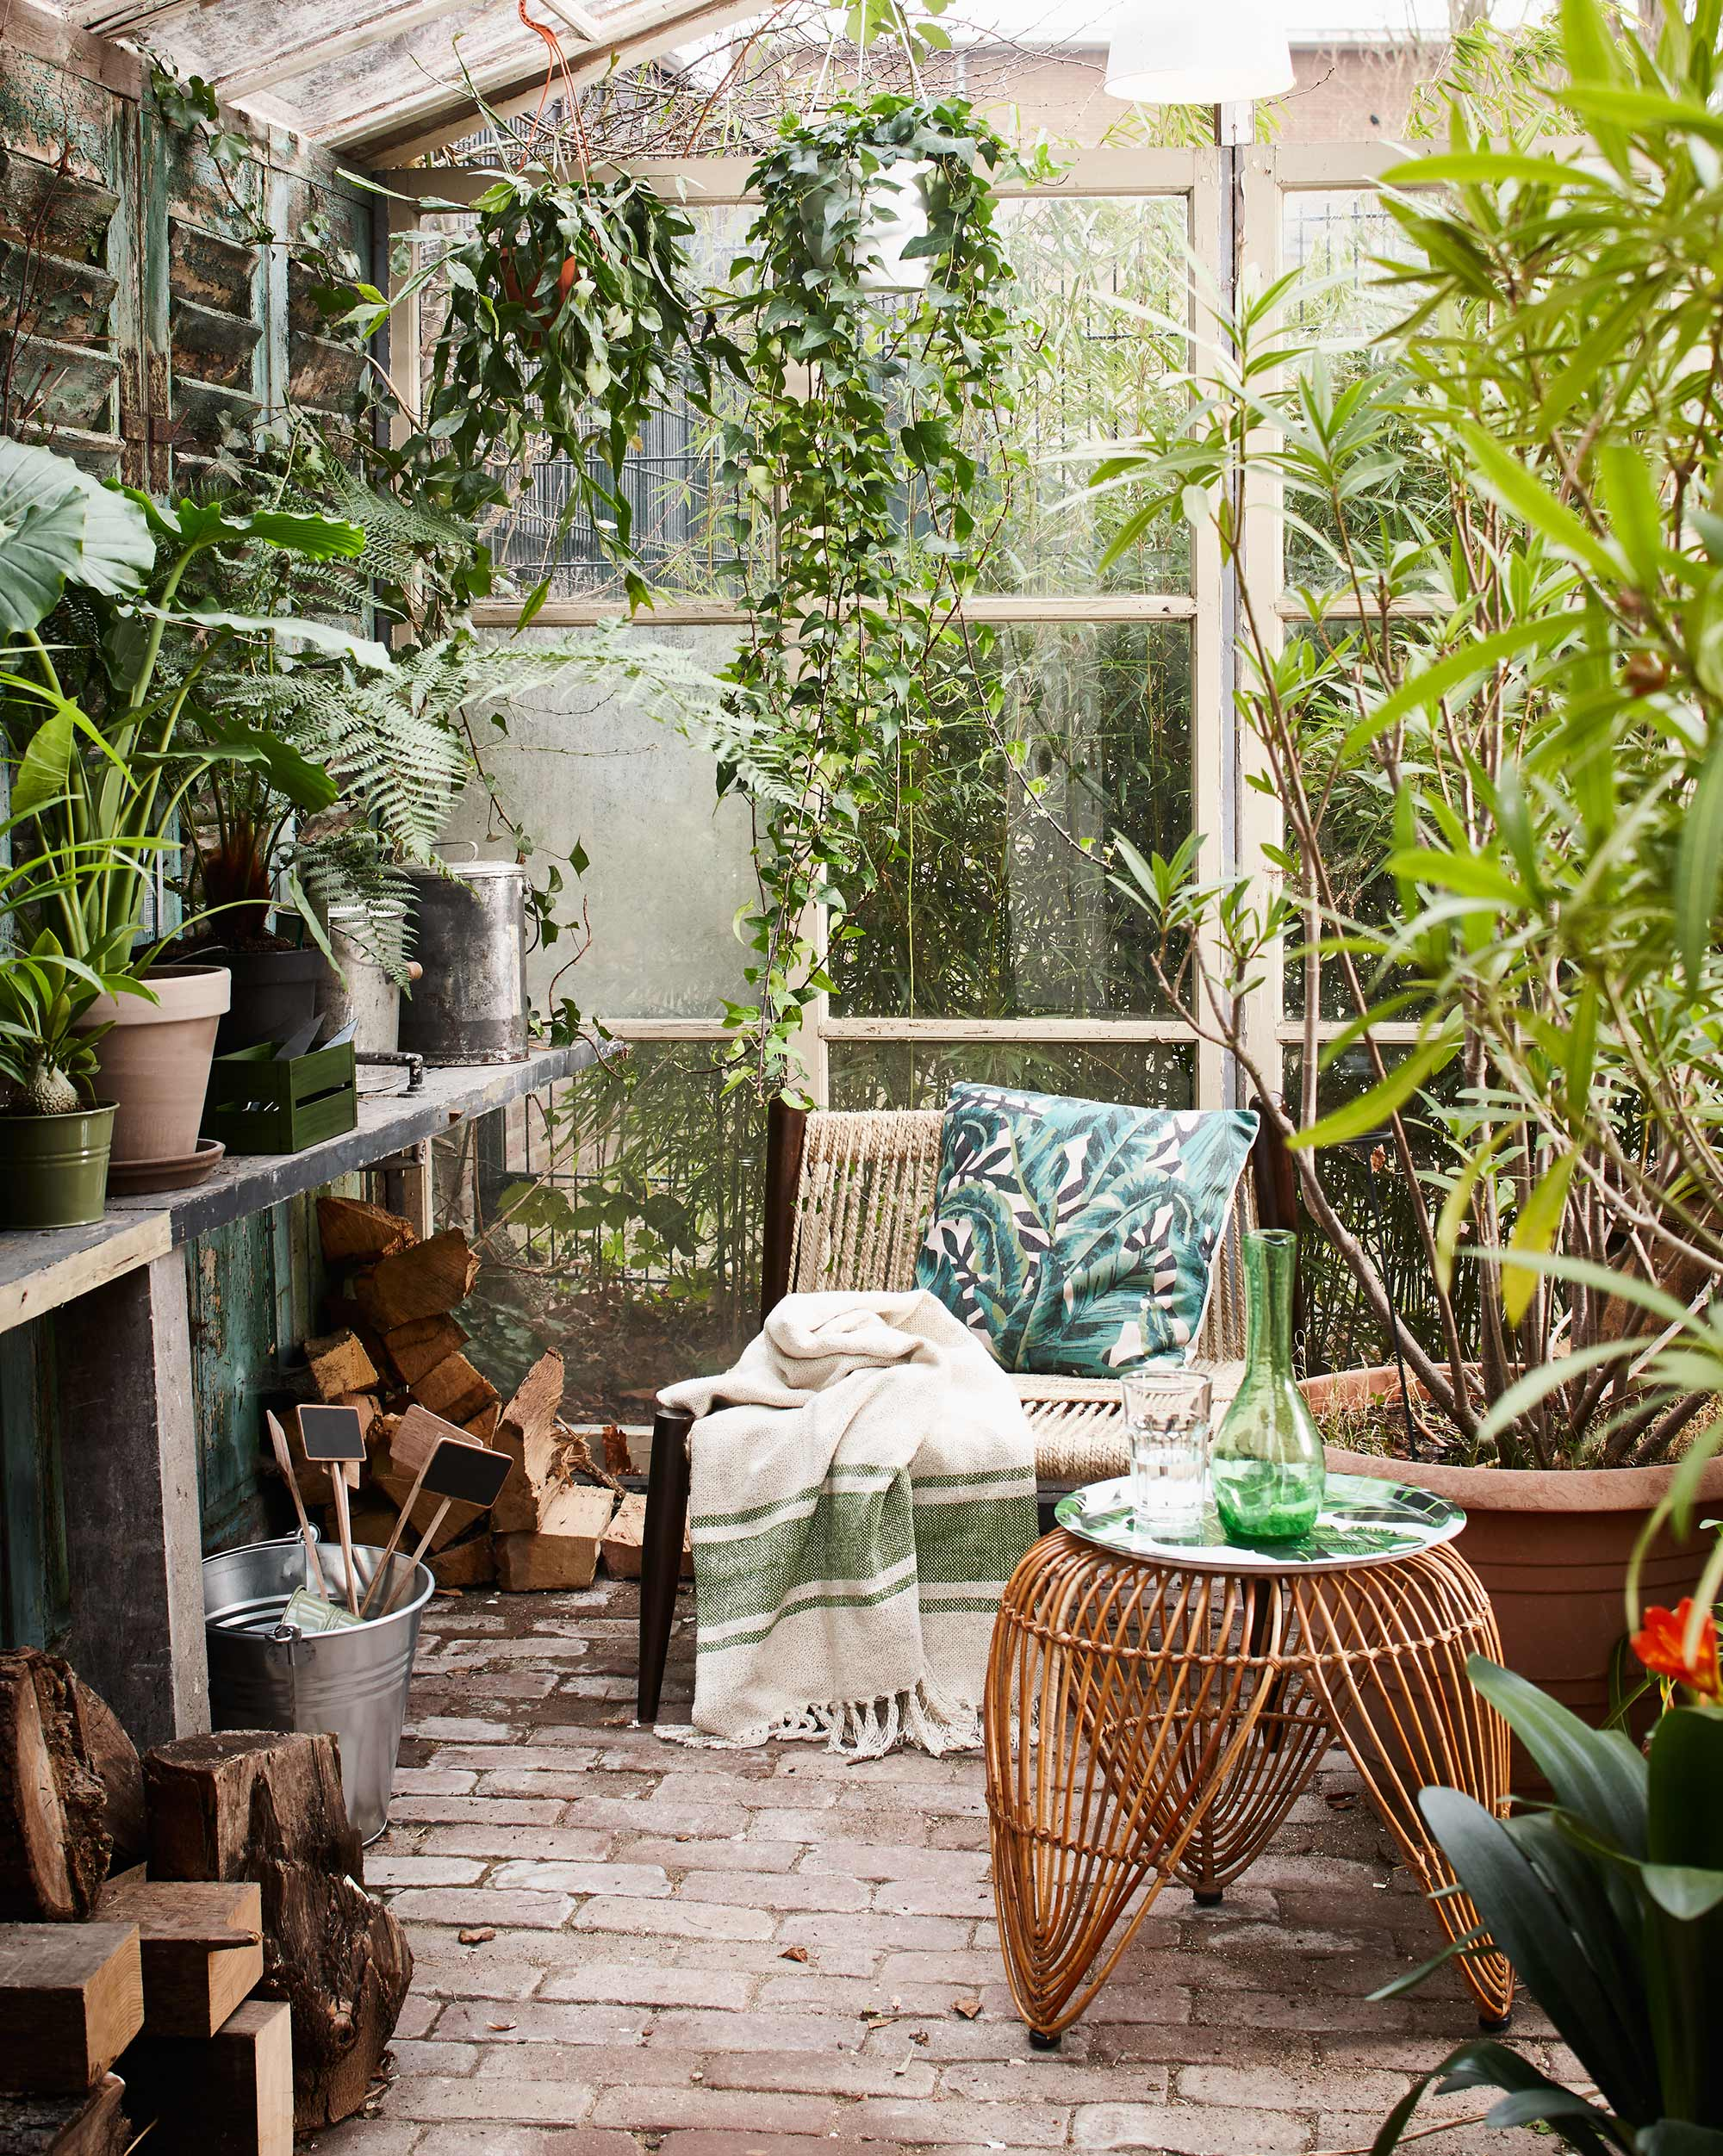 Apporter la nature dans la maison planete deco a homes world for Plantes vertes maison